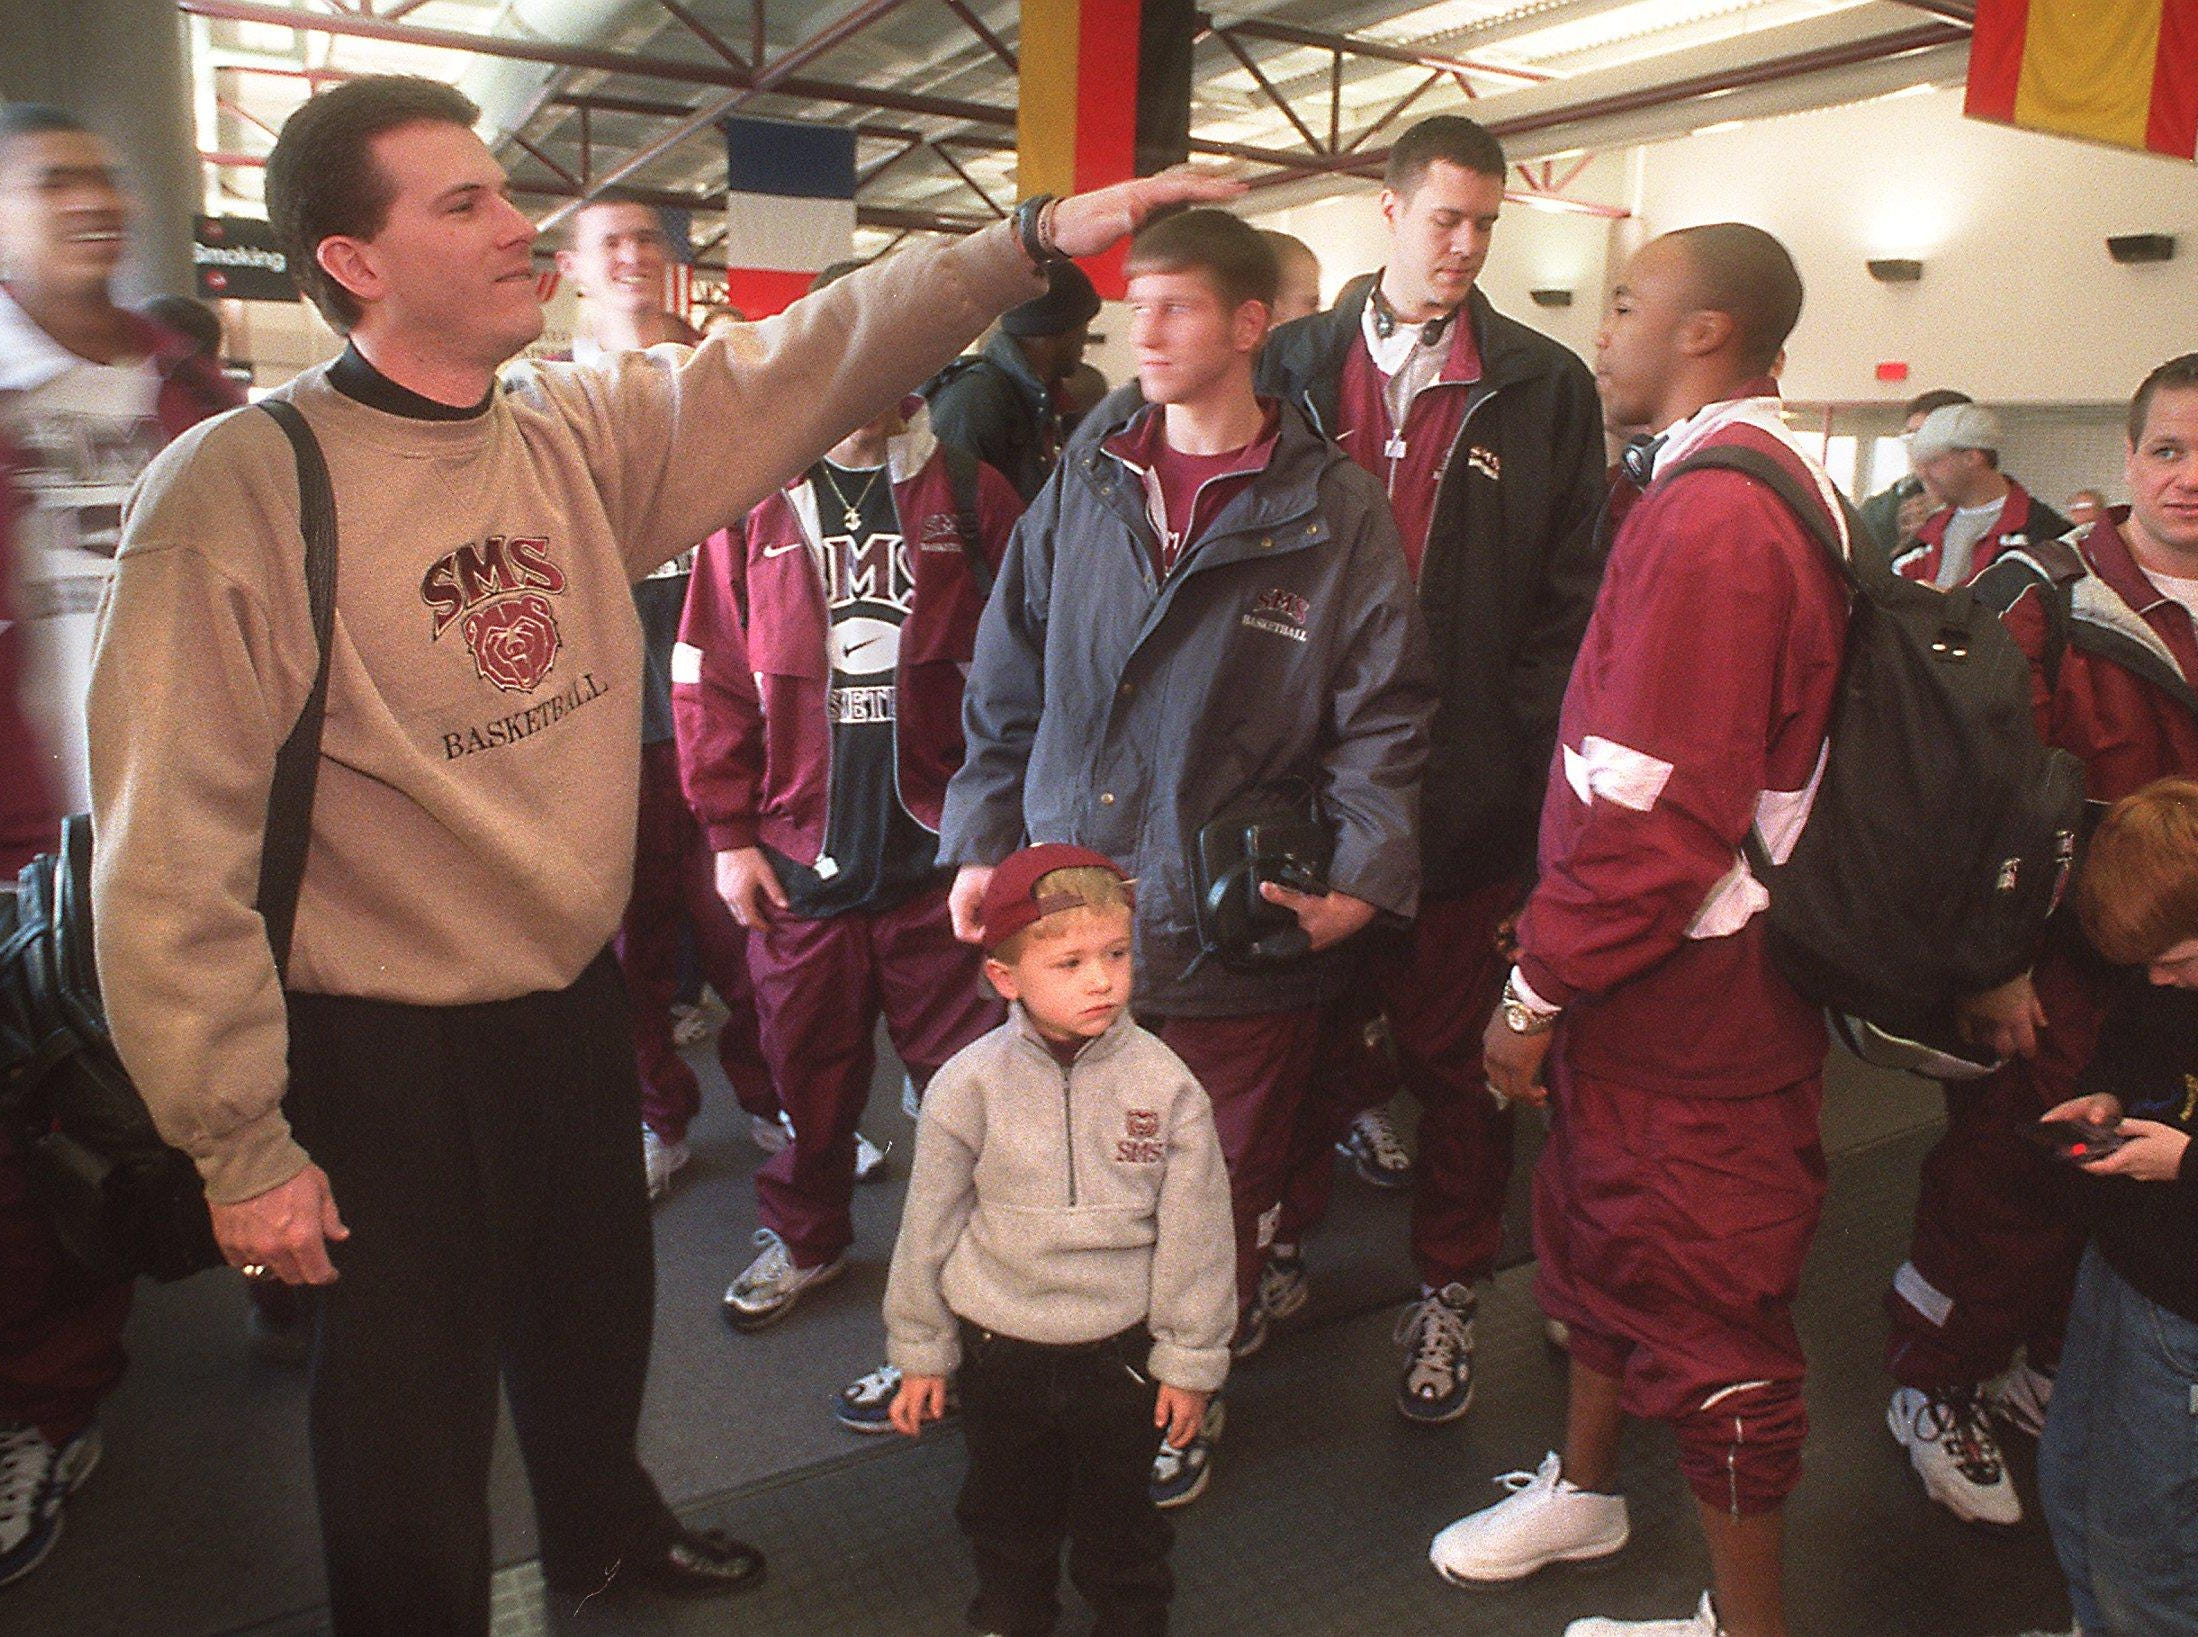 -  -news (22635) - SMS coach Steve Alford, (left) his son Bryce and the team leave the Springfield-Branson Regional Airport for Charlotte, N.C.  Bob Linder / News-Leader